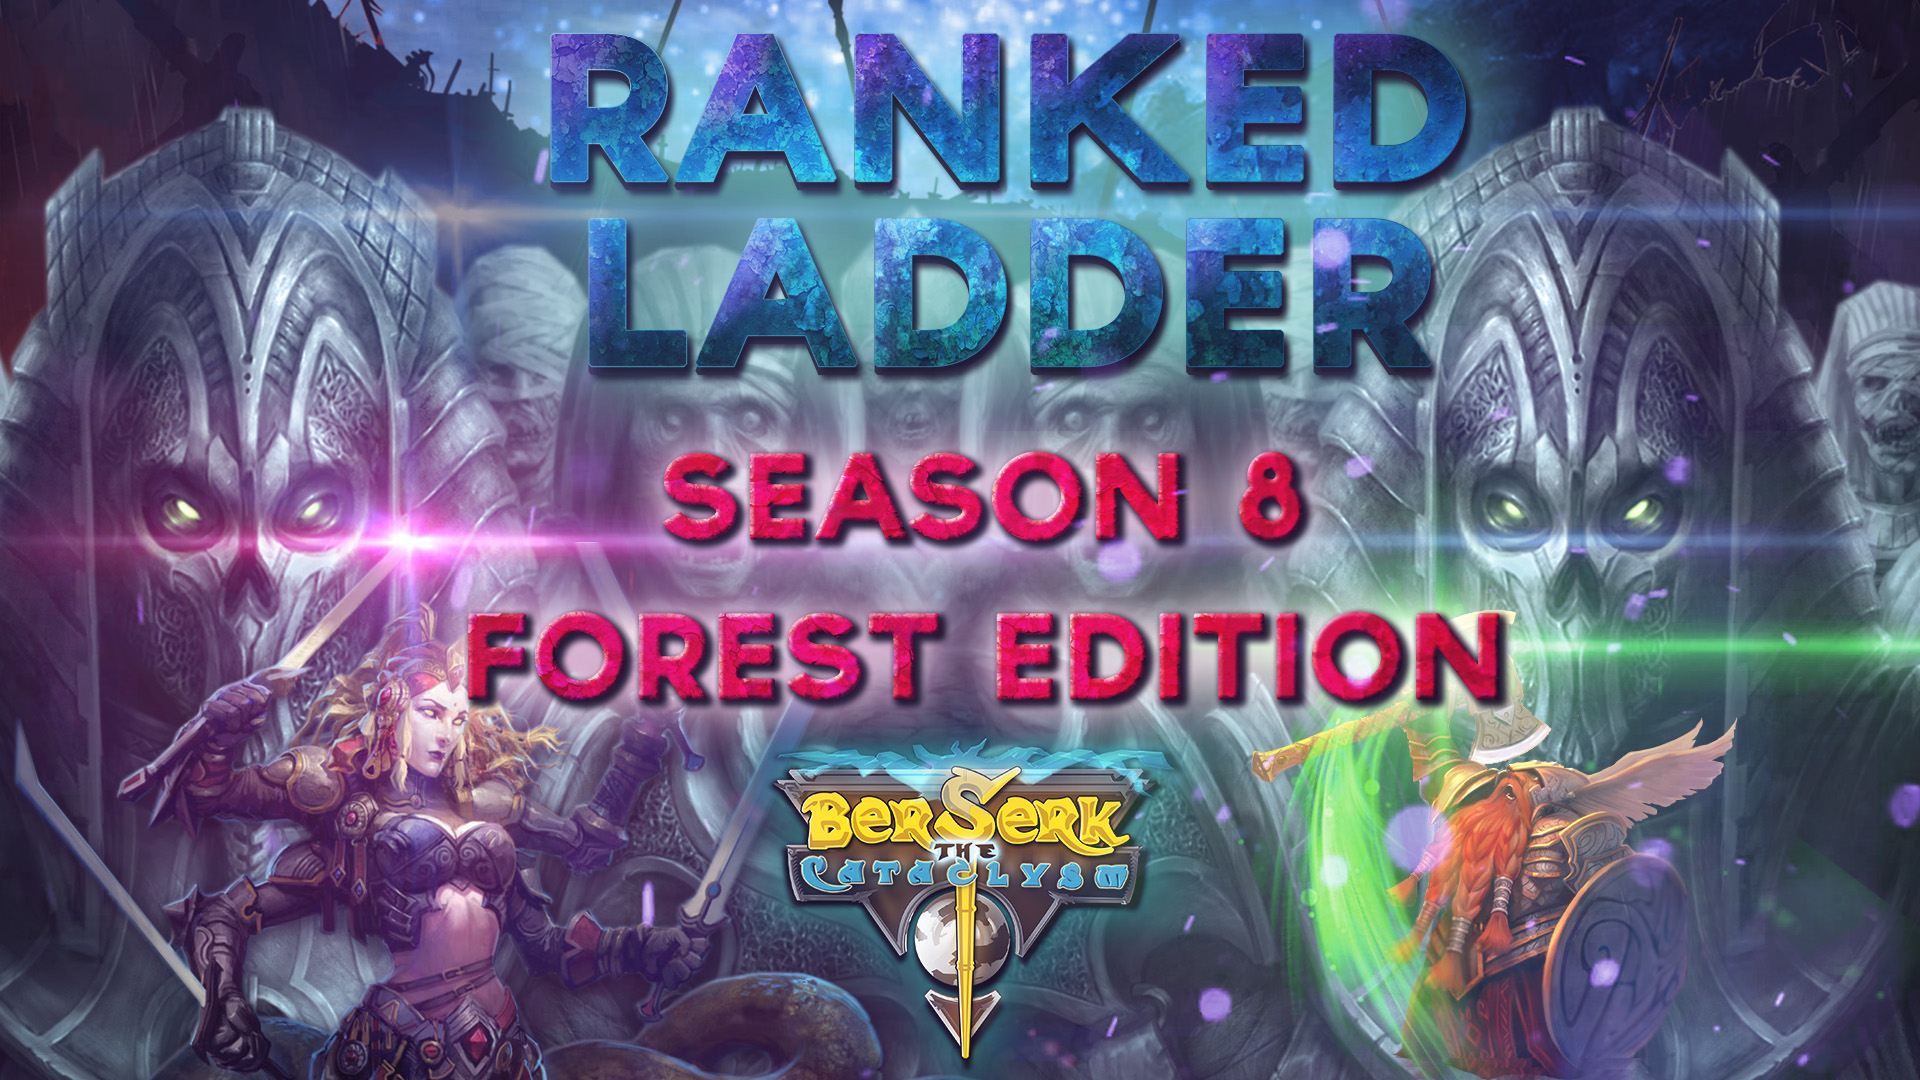 Ranked_LAdder_Season_8_forest.jpg